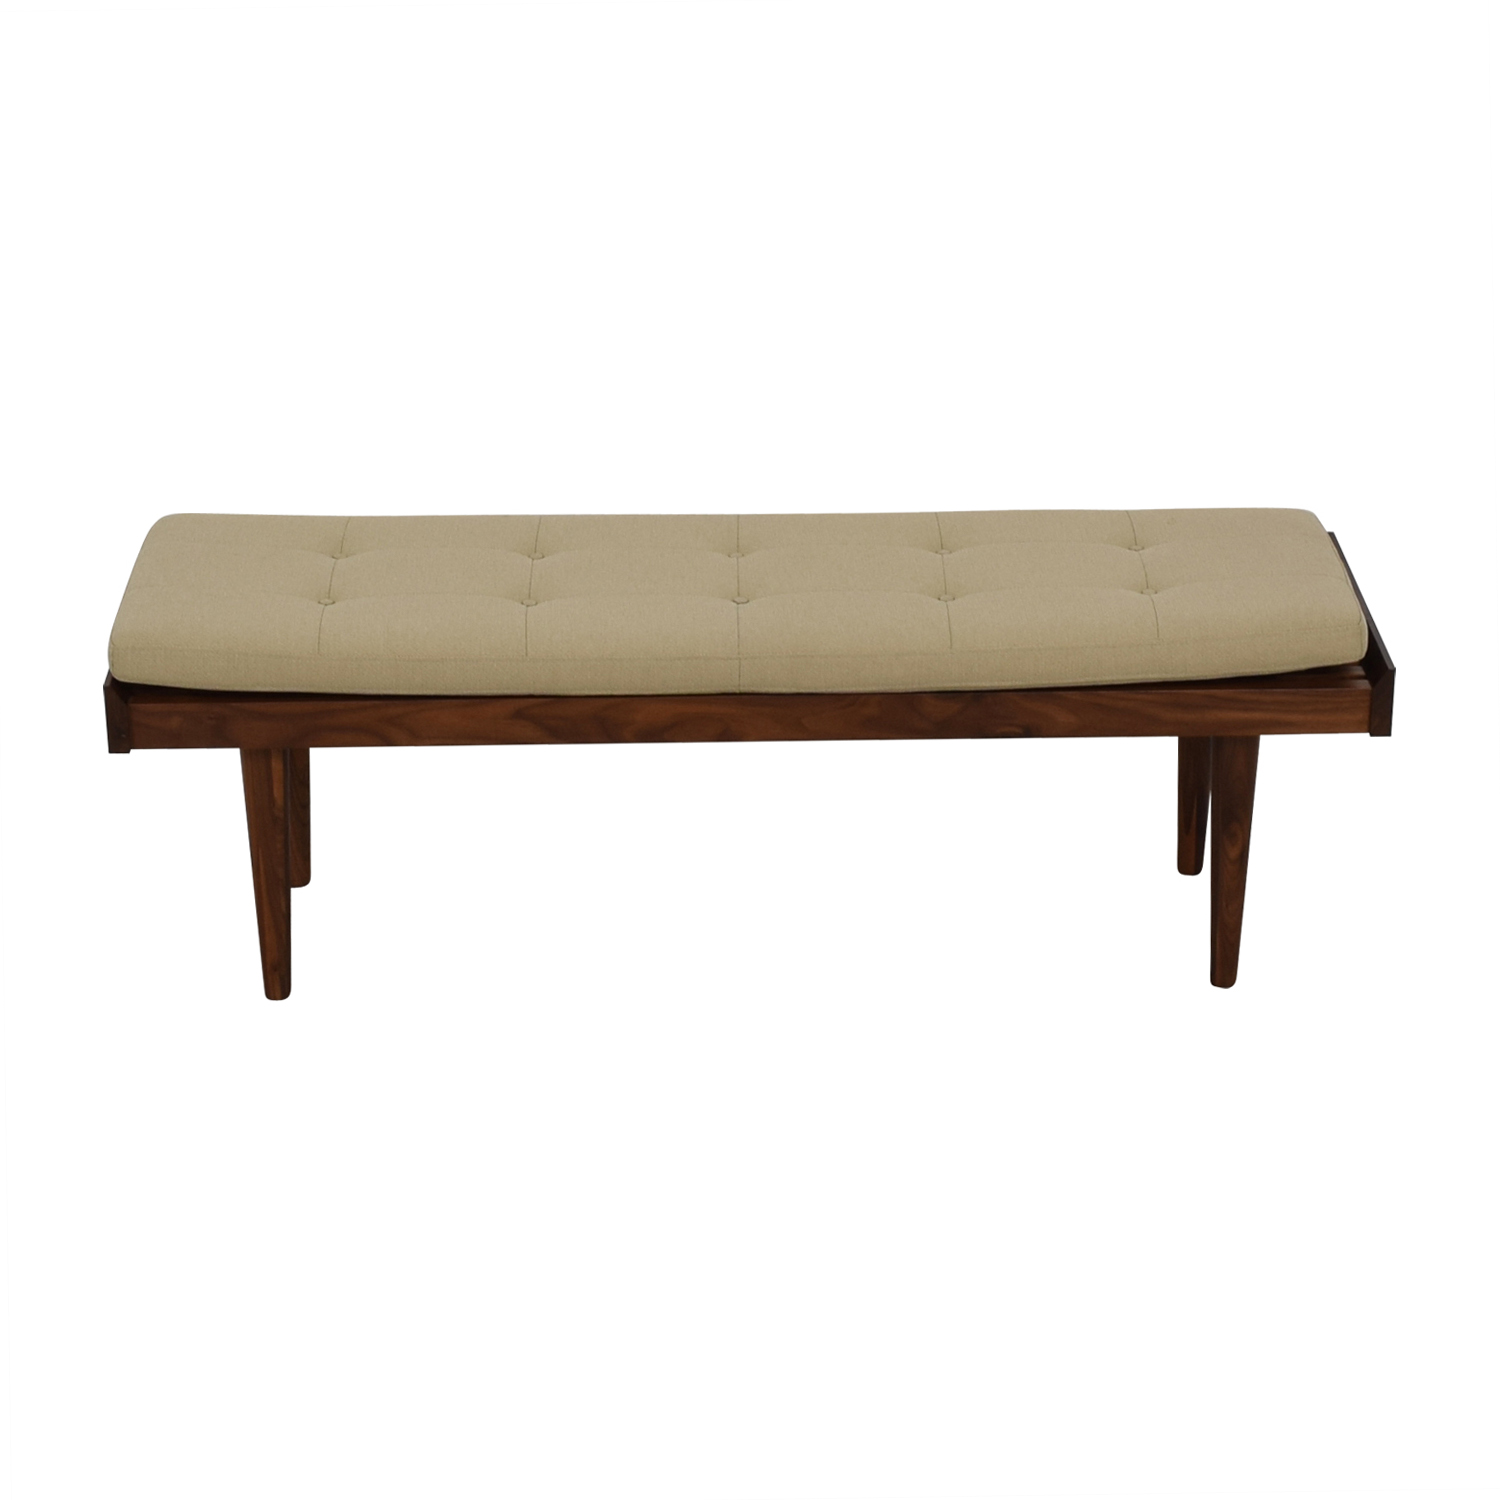 Crate & Barrel Crate & Barrel Beige Upholstered Wood Bench nyc